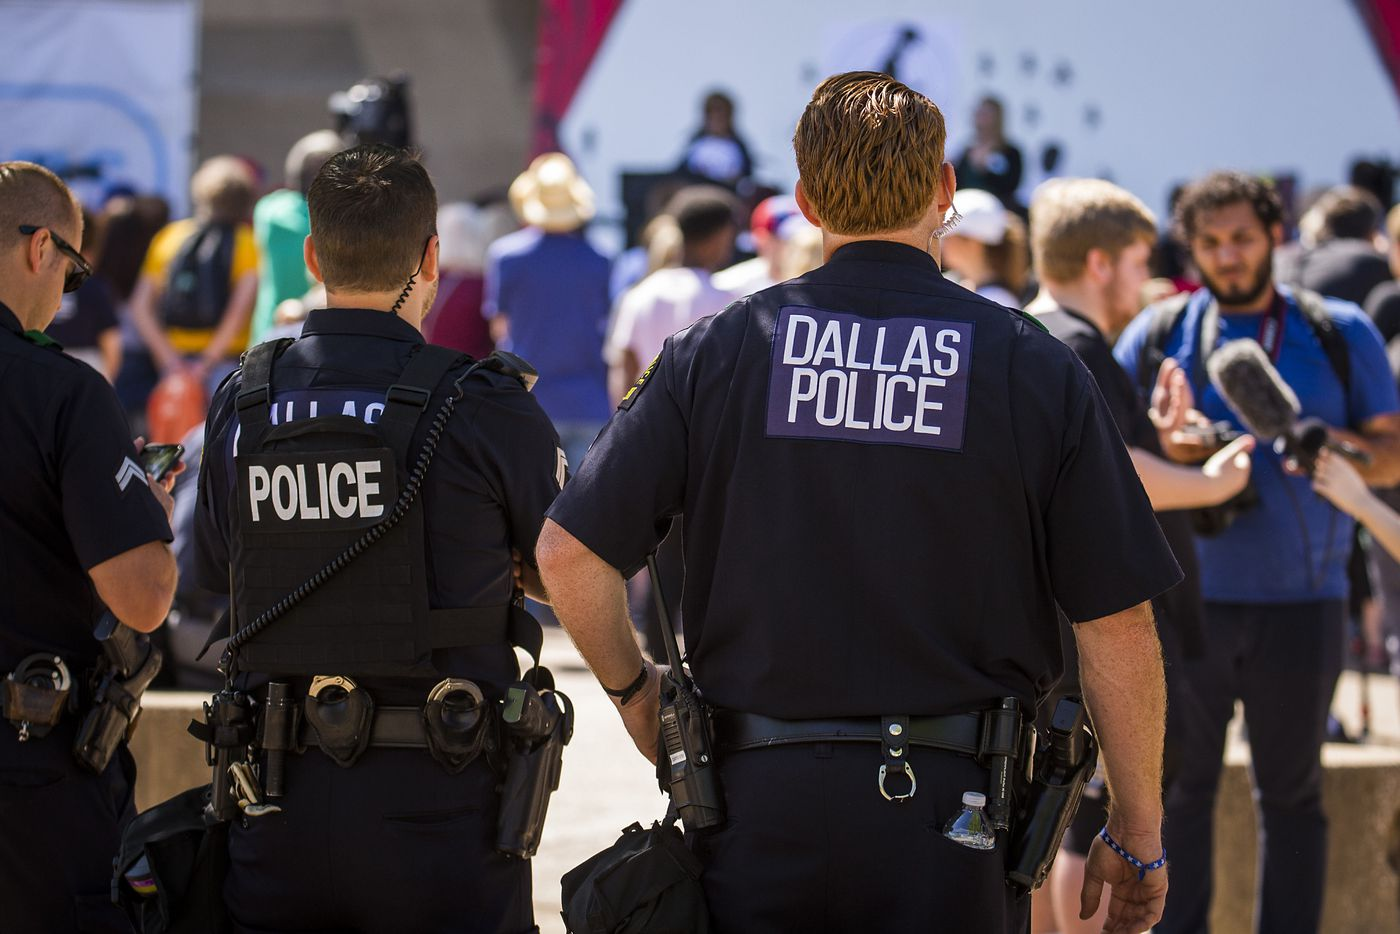 Dallas police keep an eye on control advocates as they demonstrate outside Dallas City Hall at a rally organized by StudentsMarch.org during the NRA Annual Meeting & Exhibits at the Kay Bailey Hutchison Convention Center on Saturday, May 5, 2018, in Dallas. (Smiley N. Pool/The Dallas Morning News)